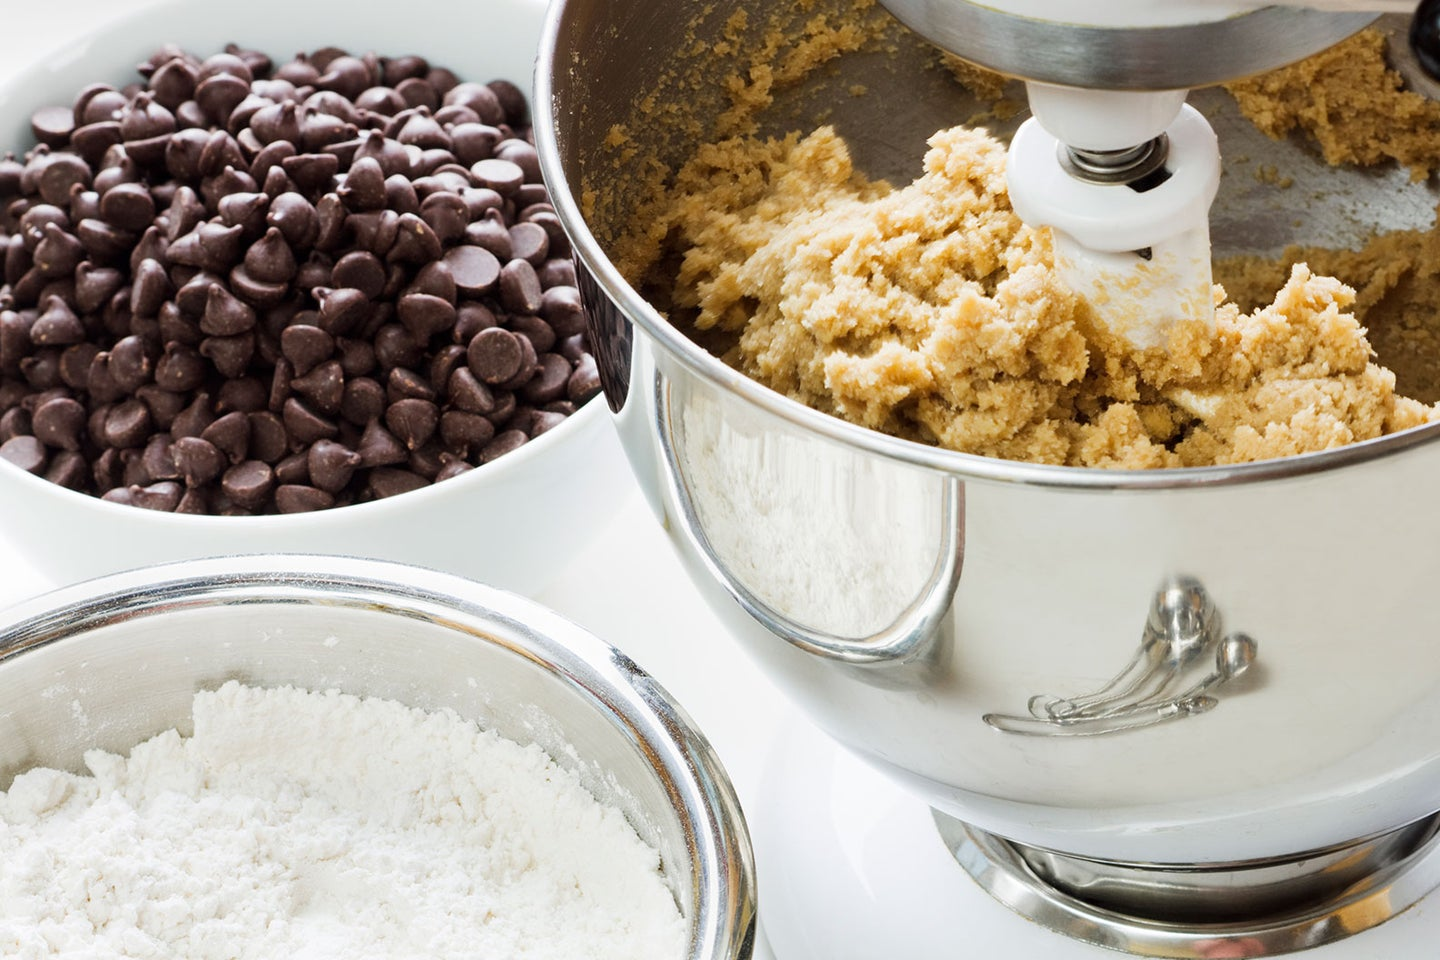 bowl of cookie dough with bowl of chocolate chips